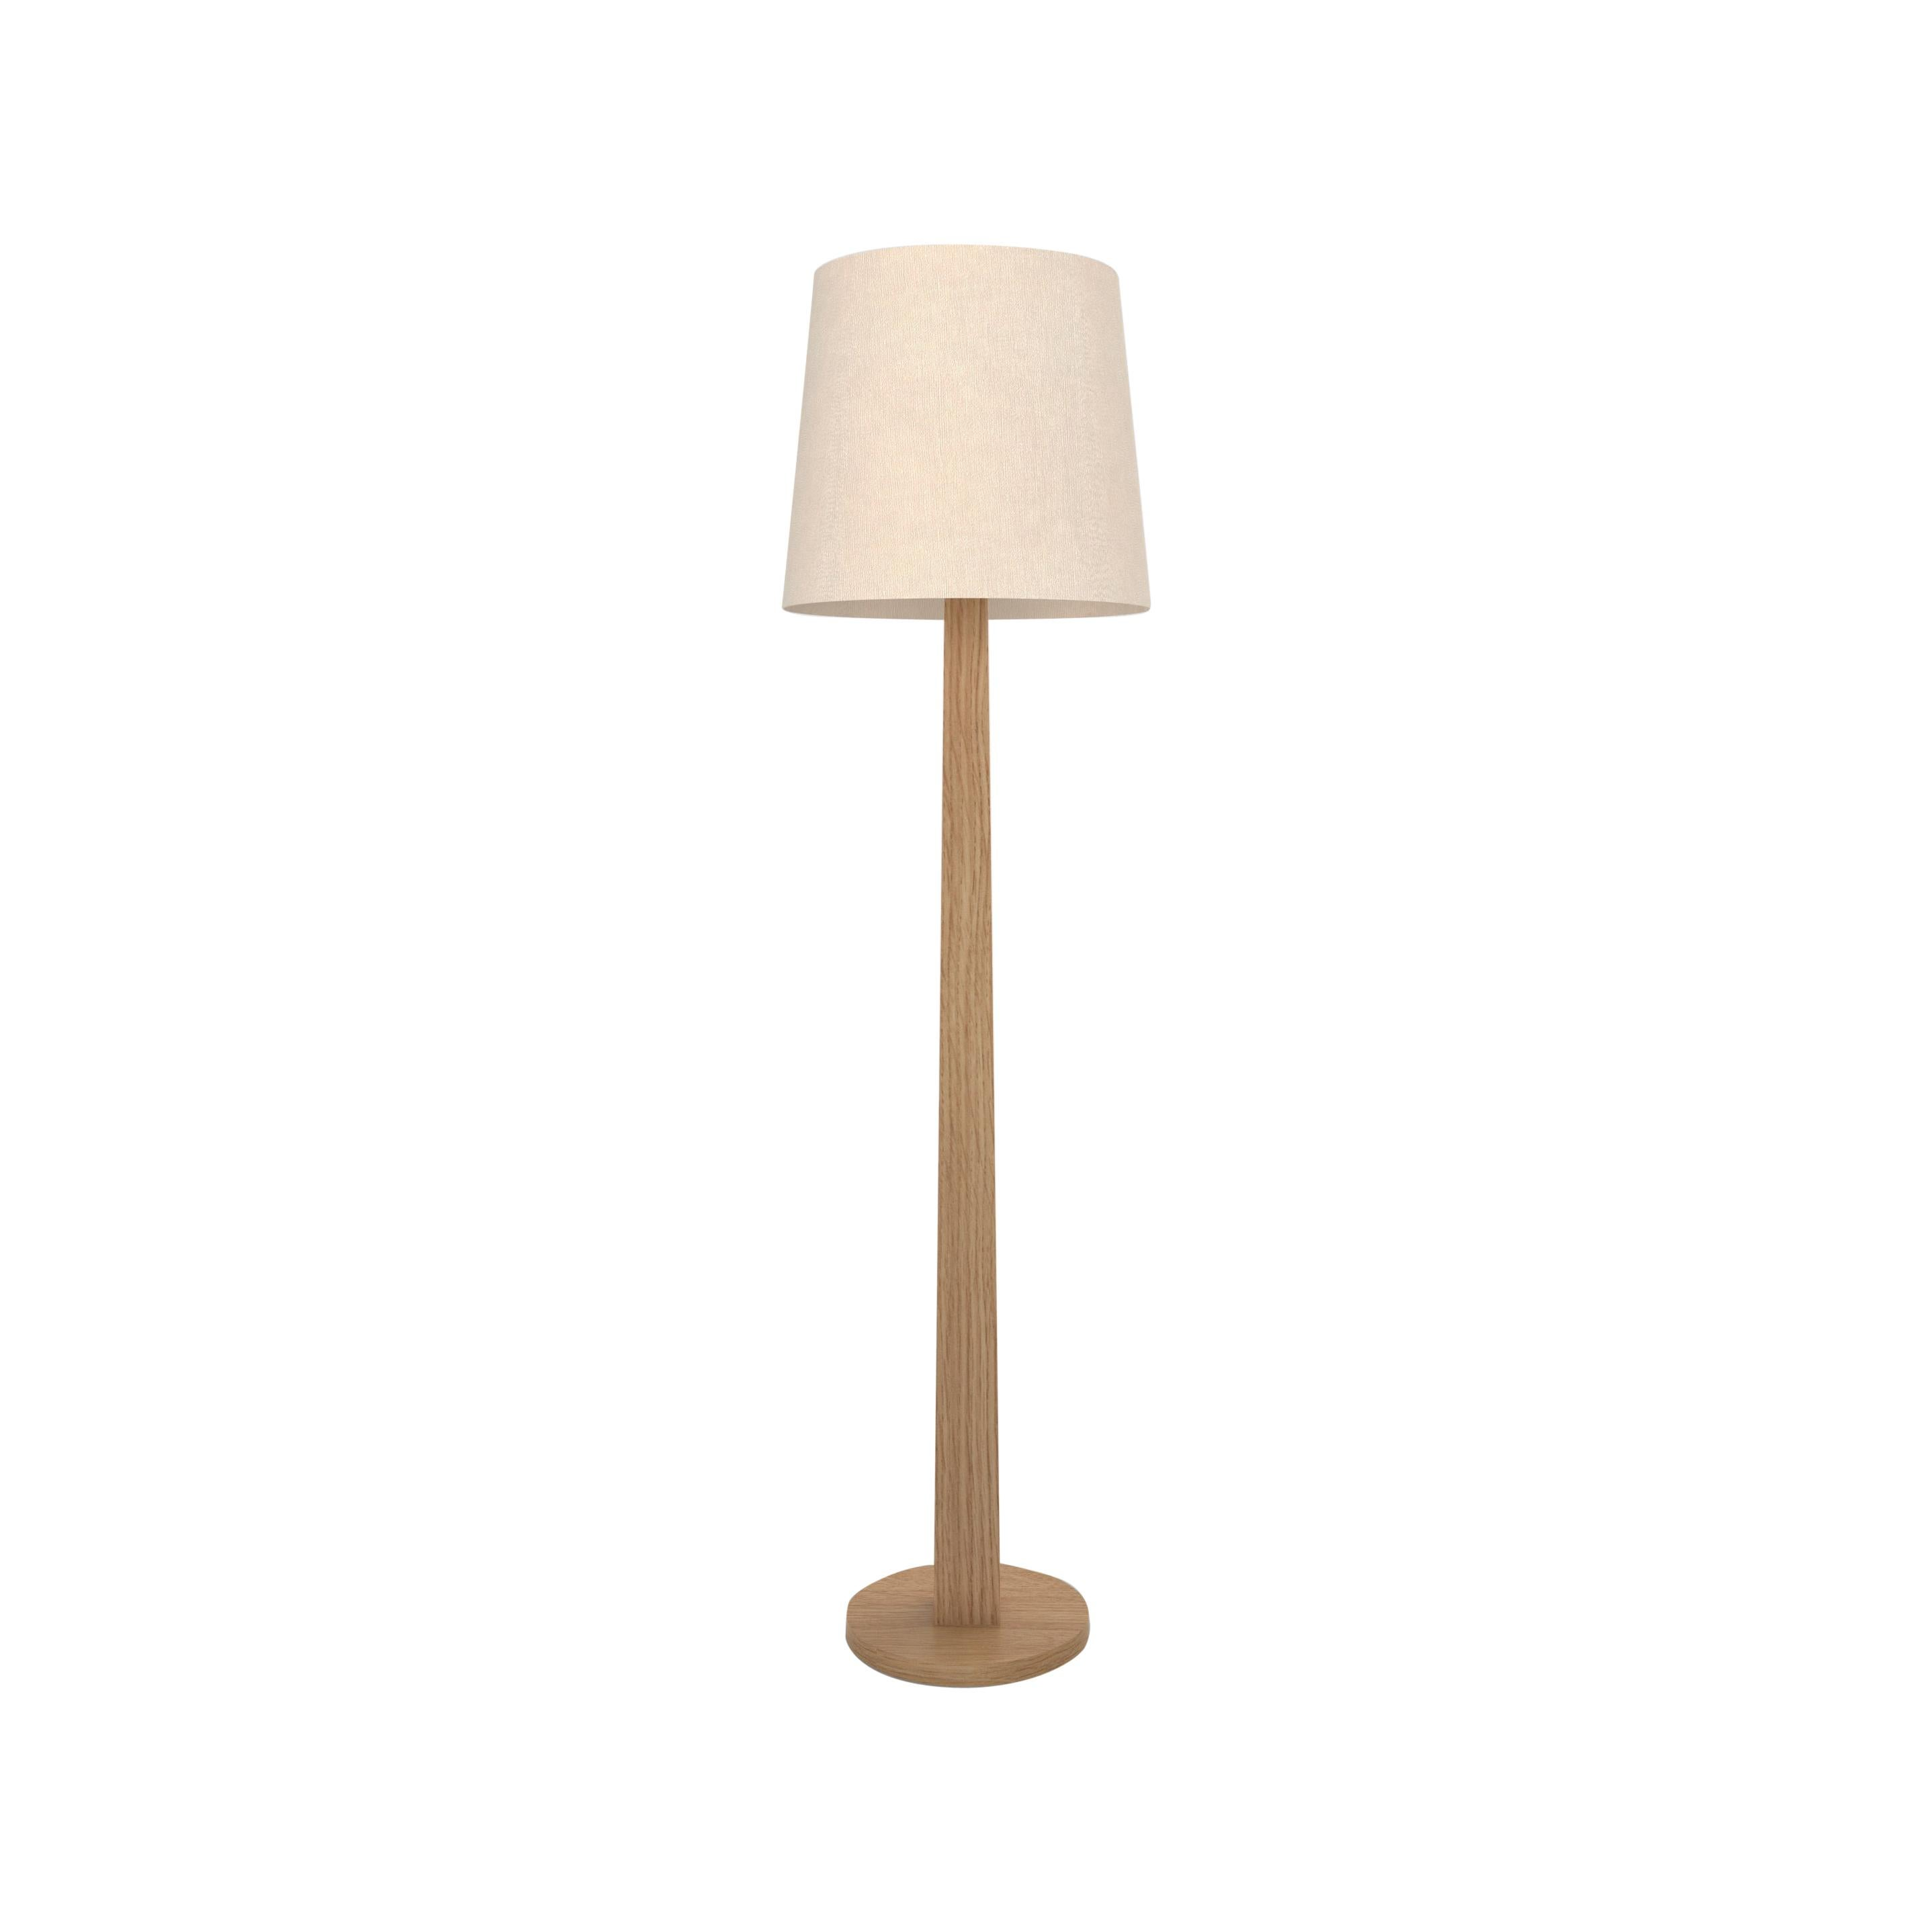 Contemporary 002 Floor Lamp in Oak by Orphan Work